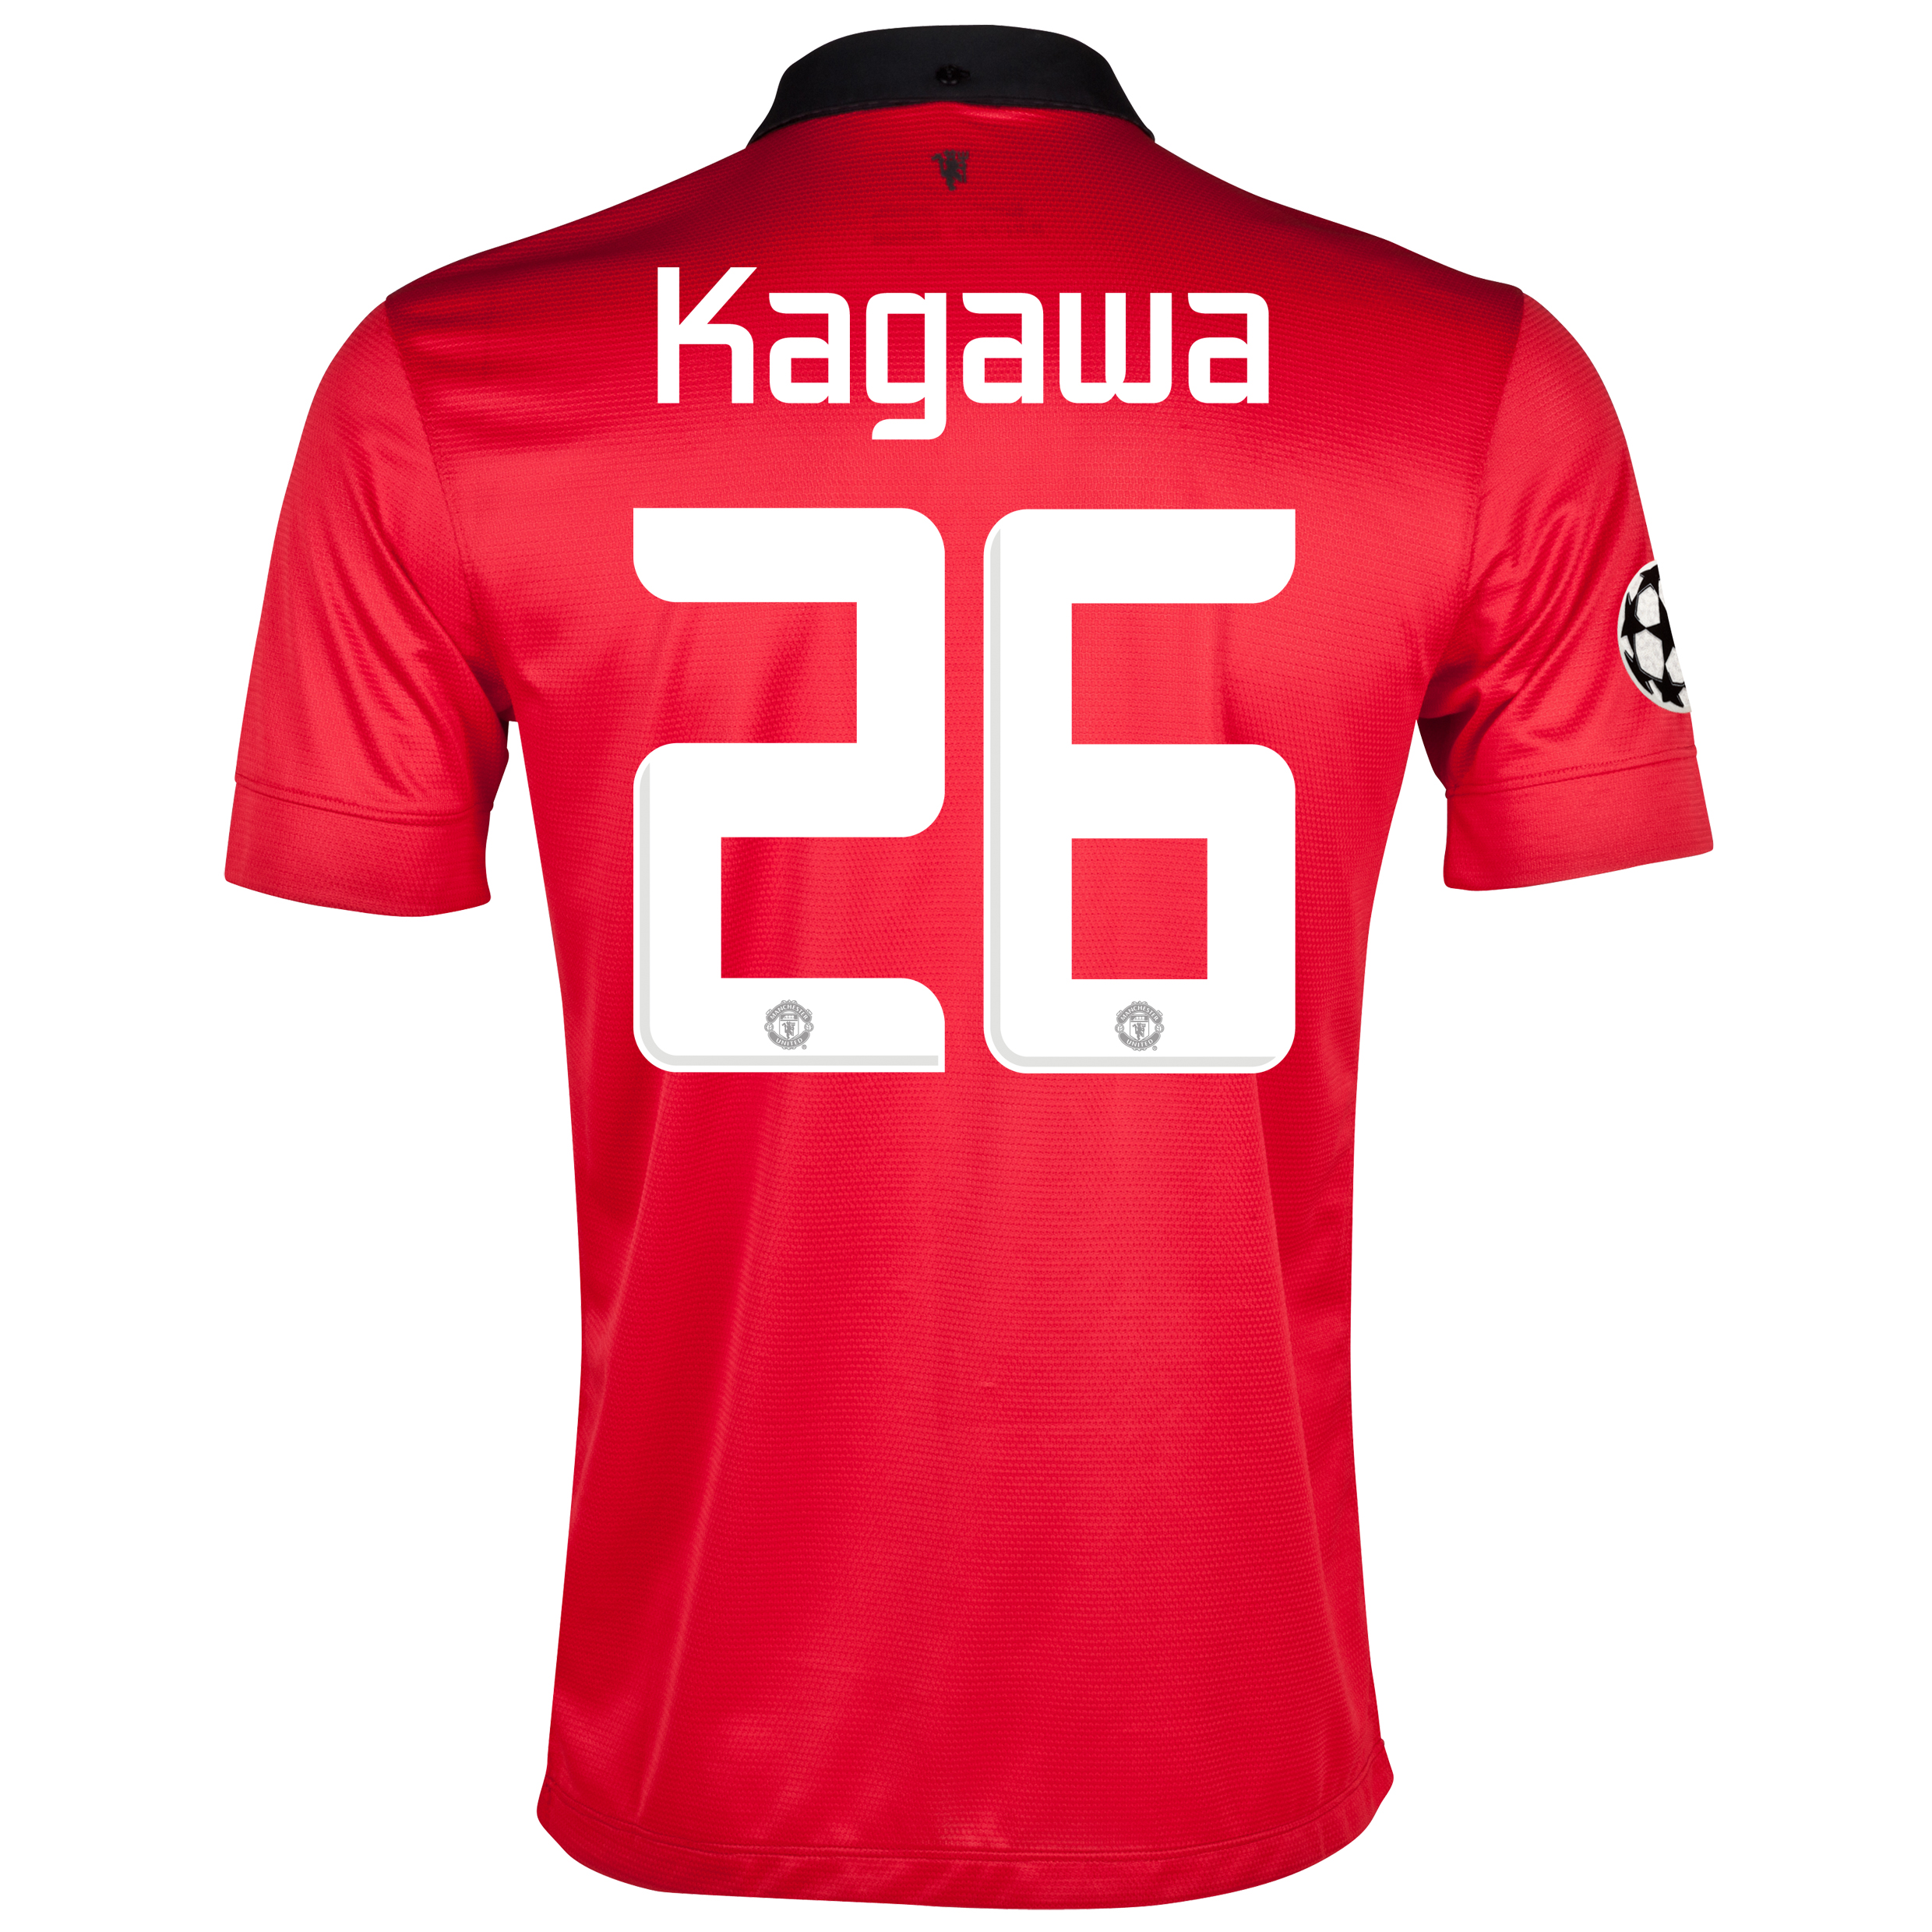 Manchester United UEFA Champions League Home Shirt 2013/14 with Kagawa 26 printing